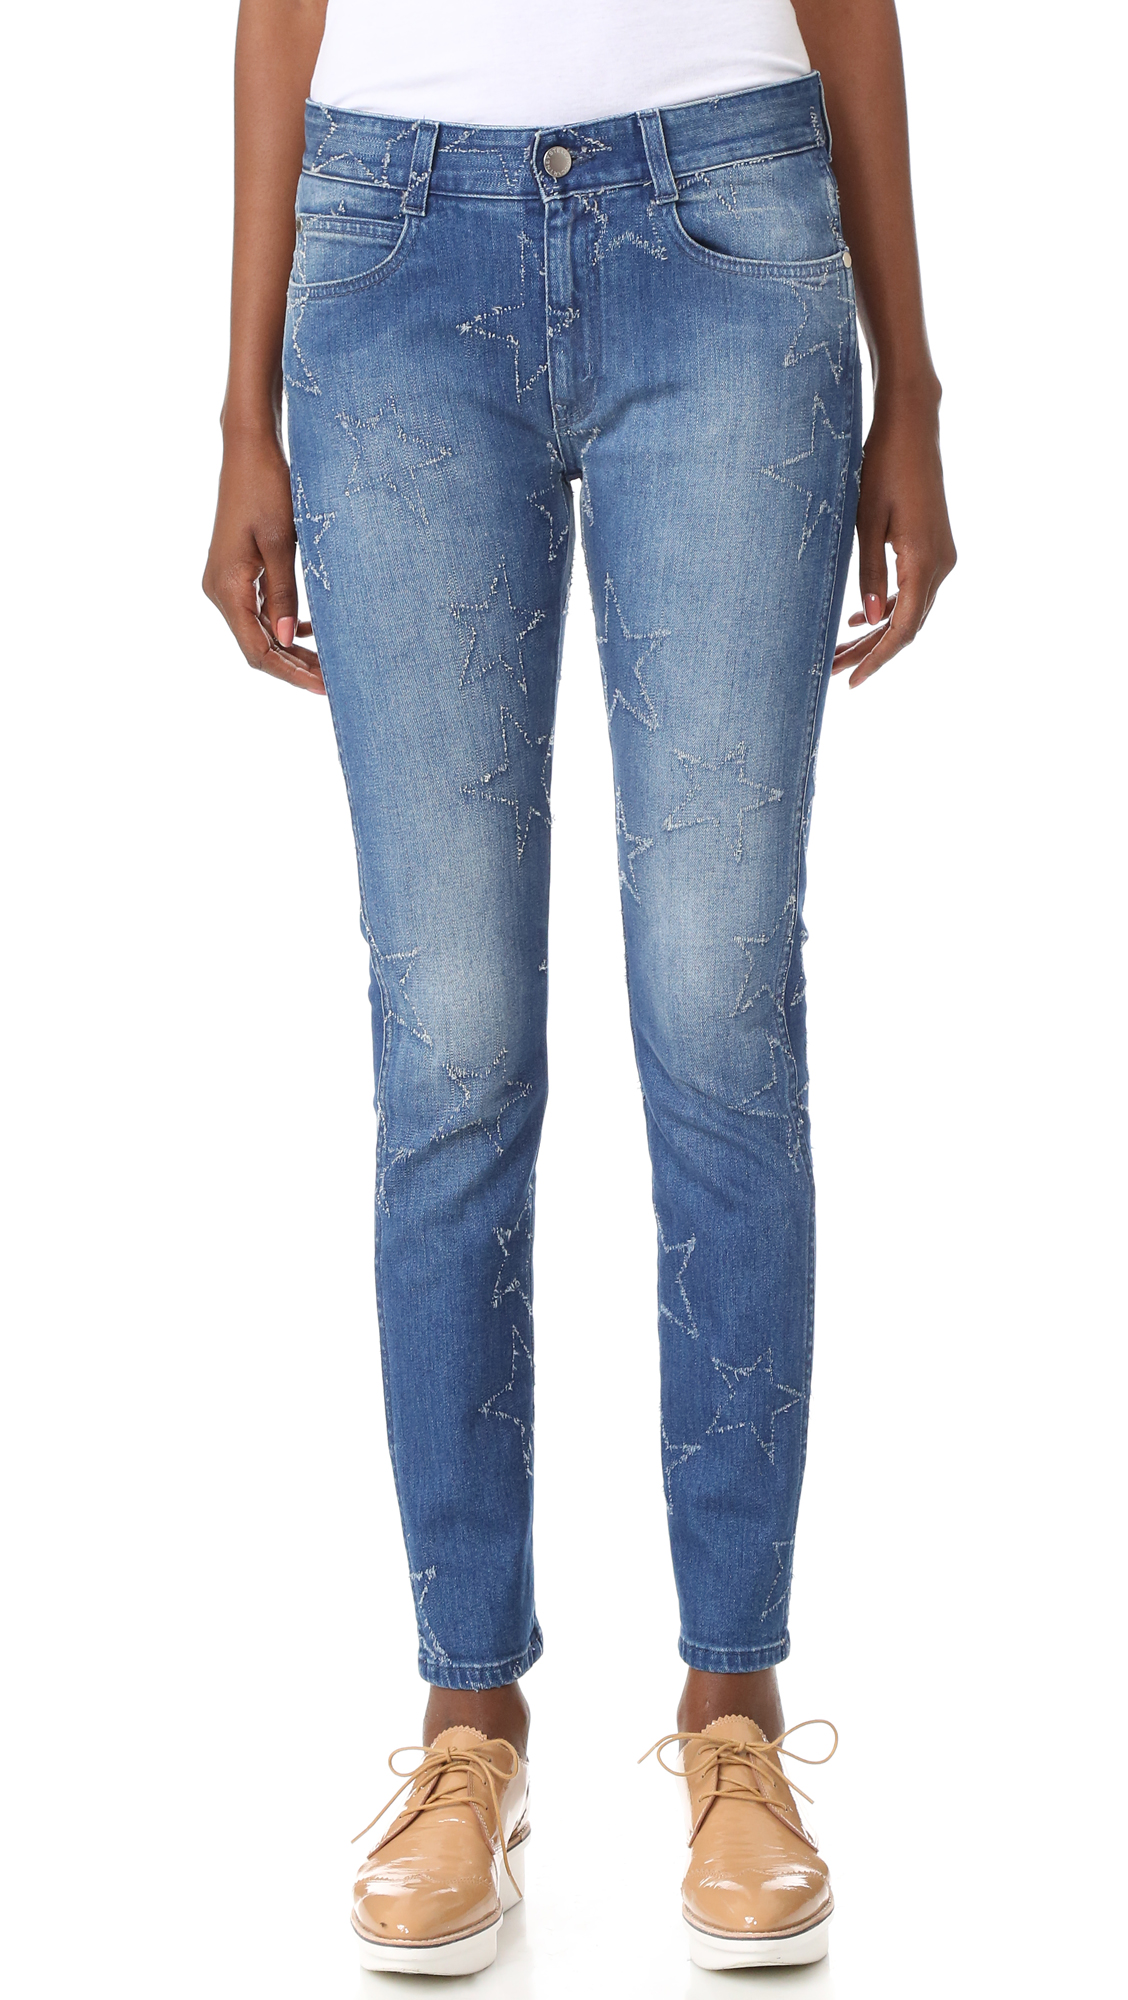 Stella McCartney Skinny Boyfriend Jeans - Deep Blue